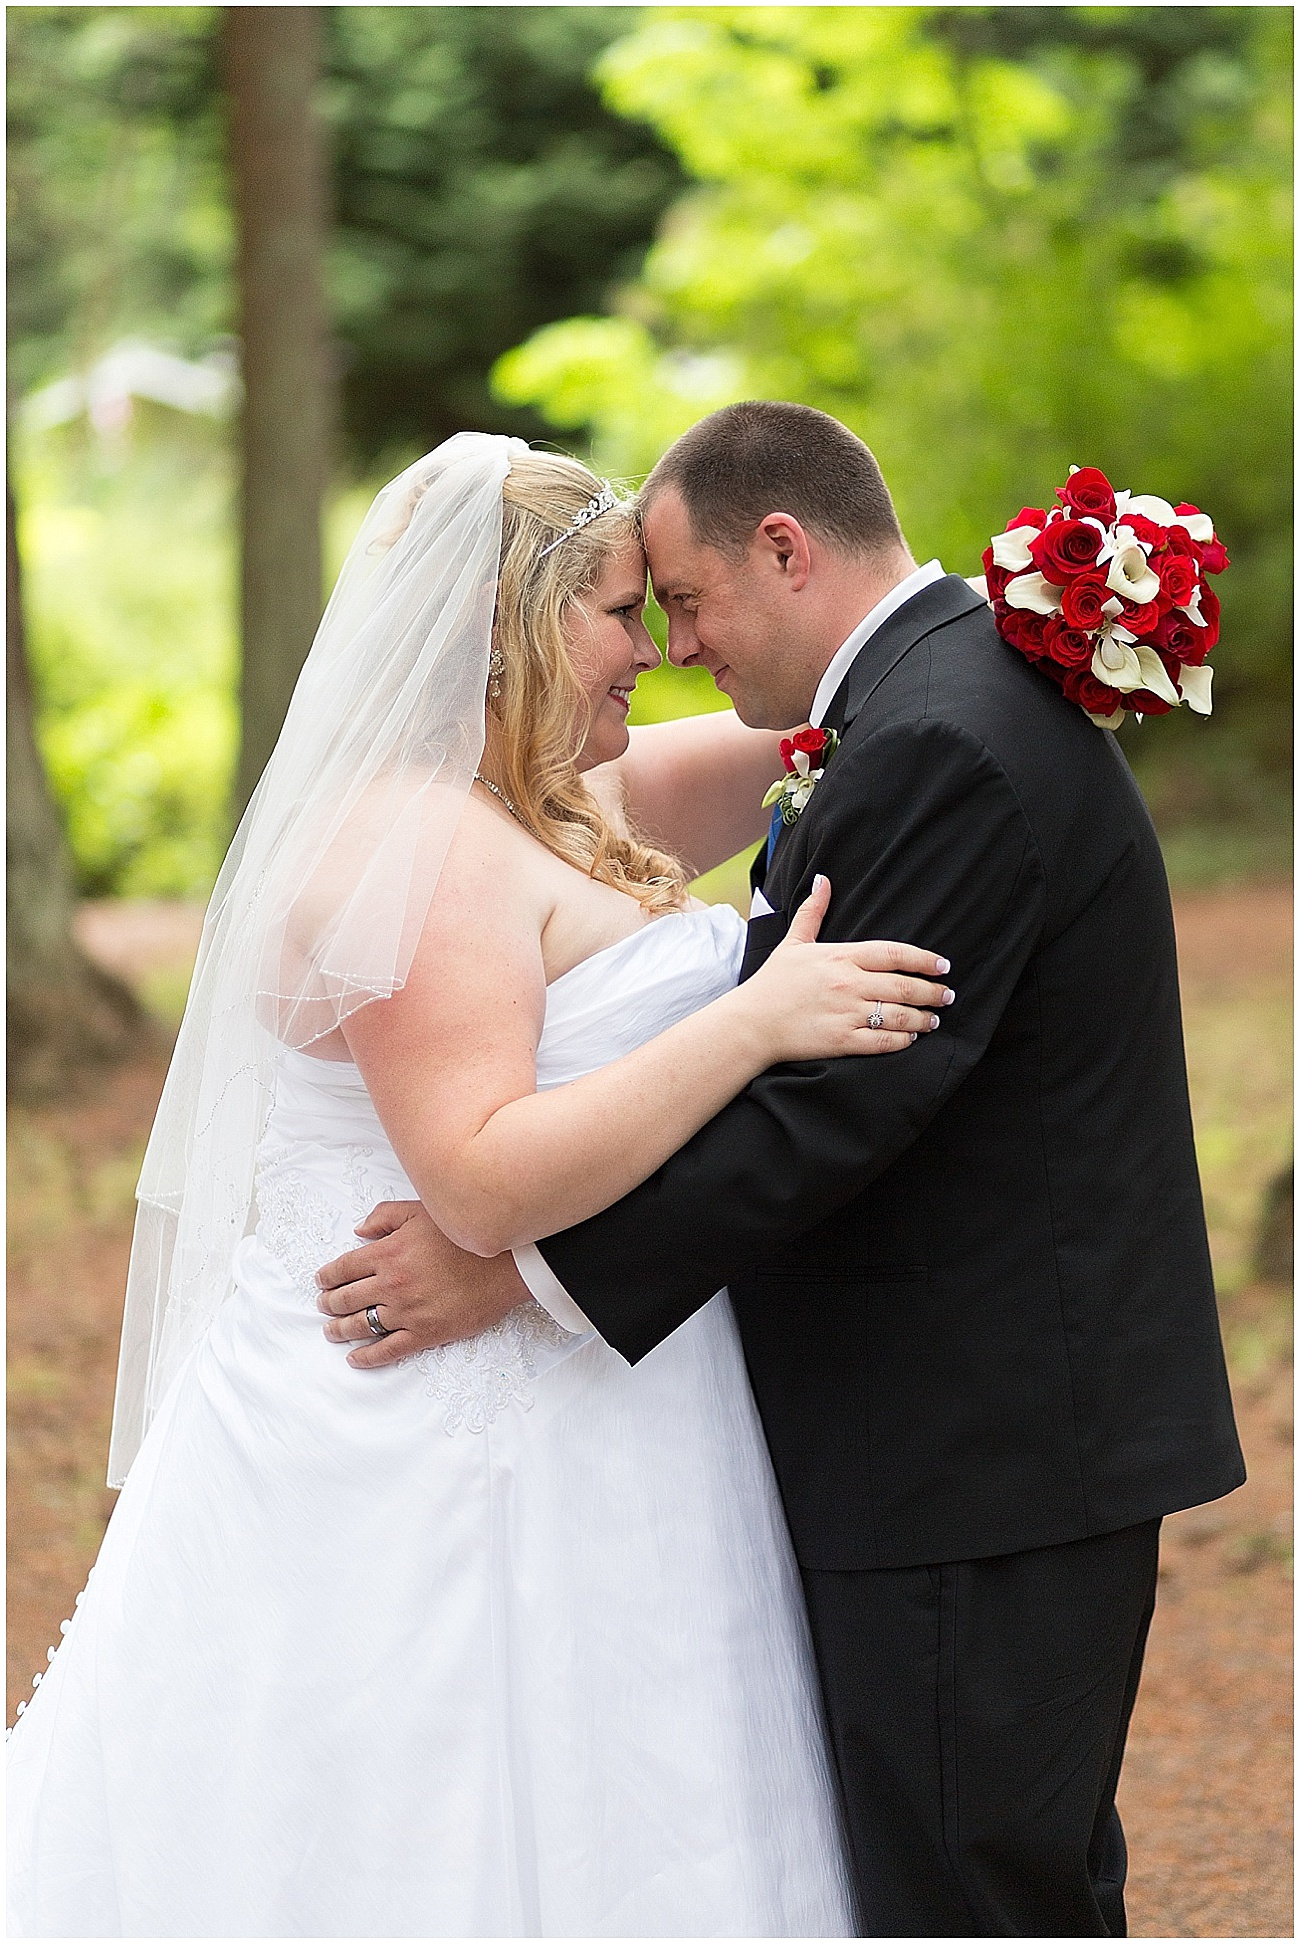 Hux_KitsapMemorialPark_Wedding_0005